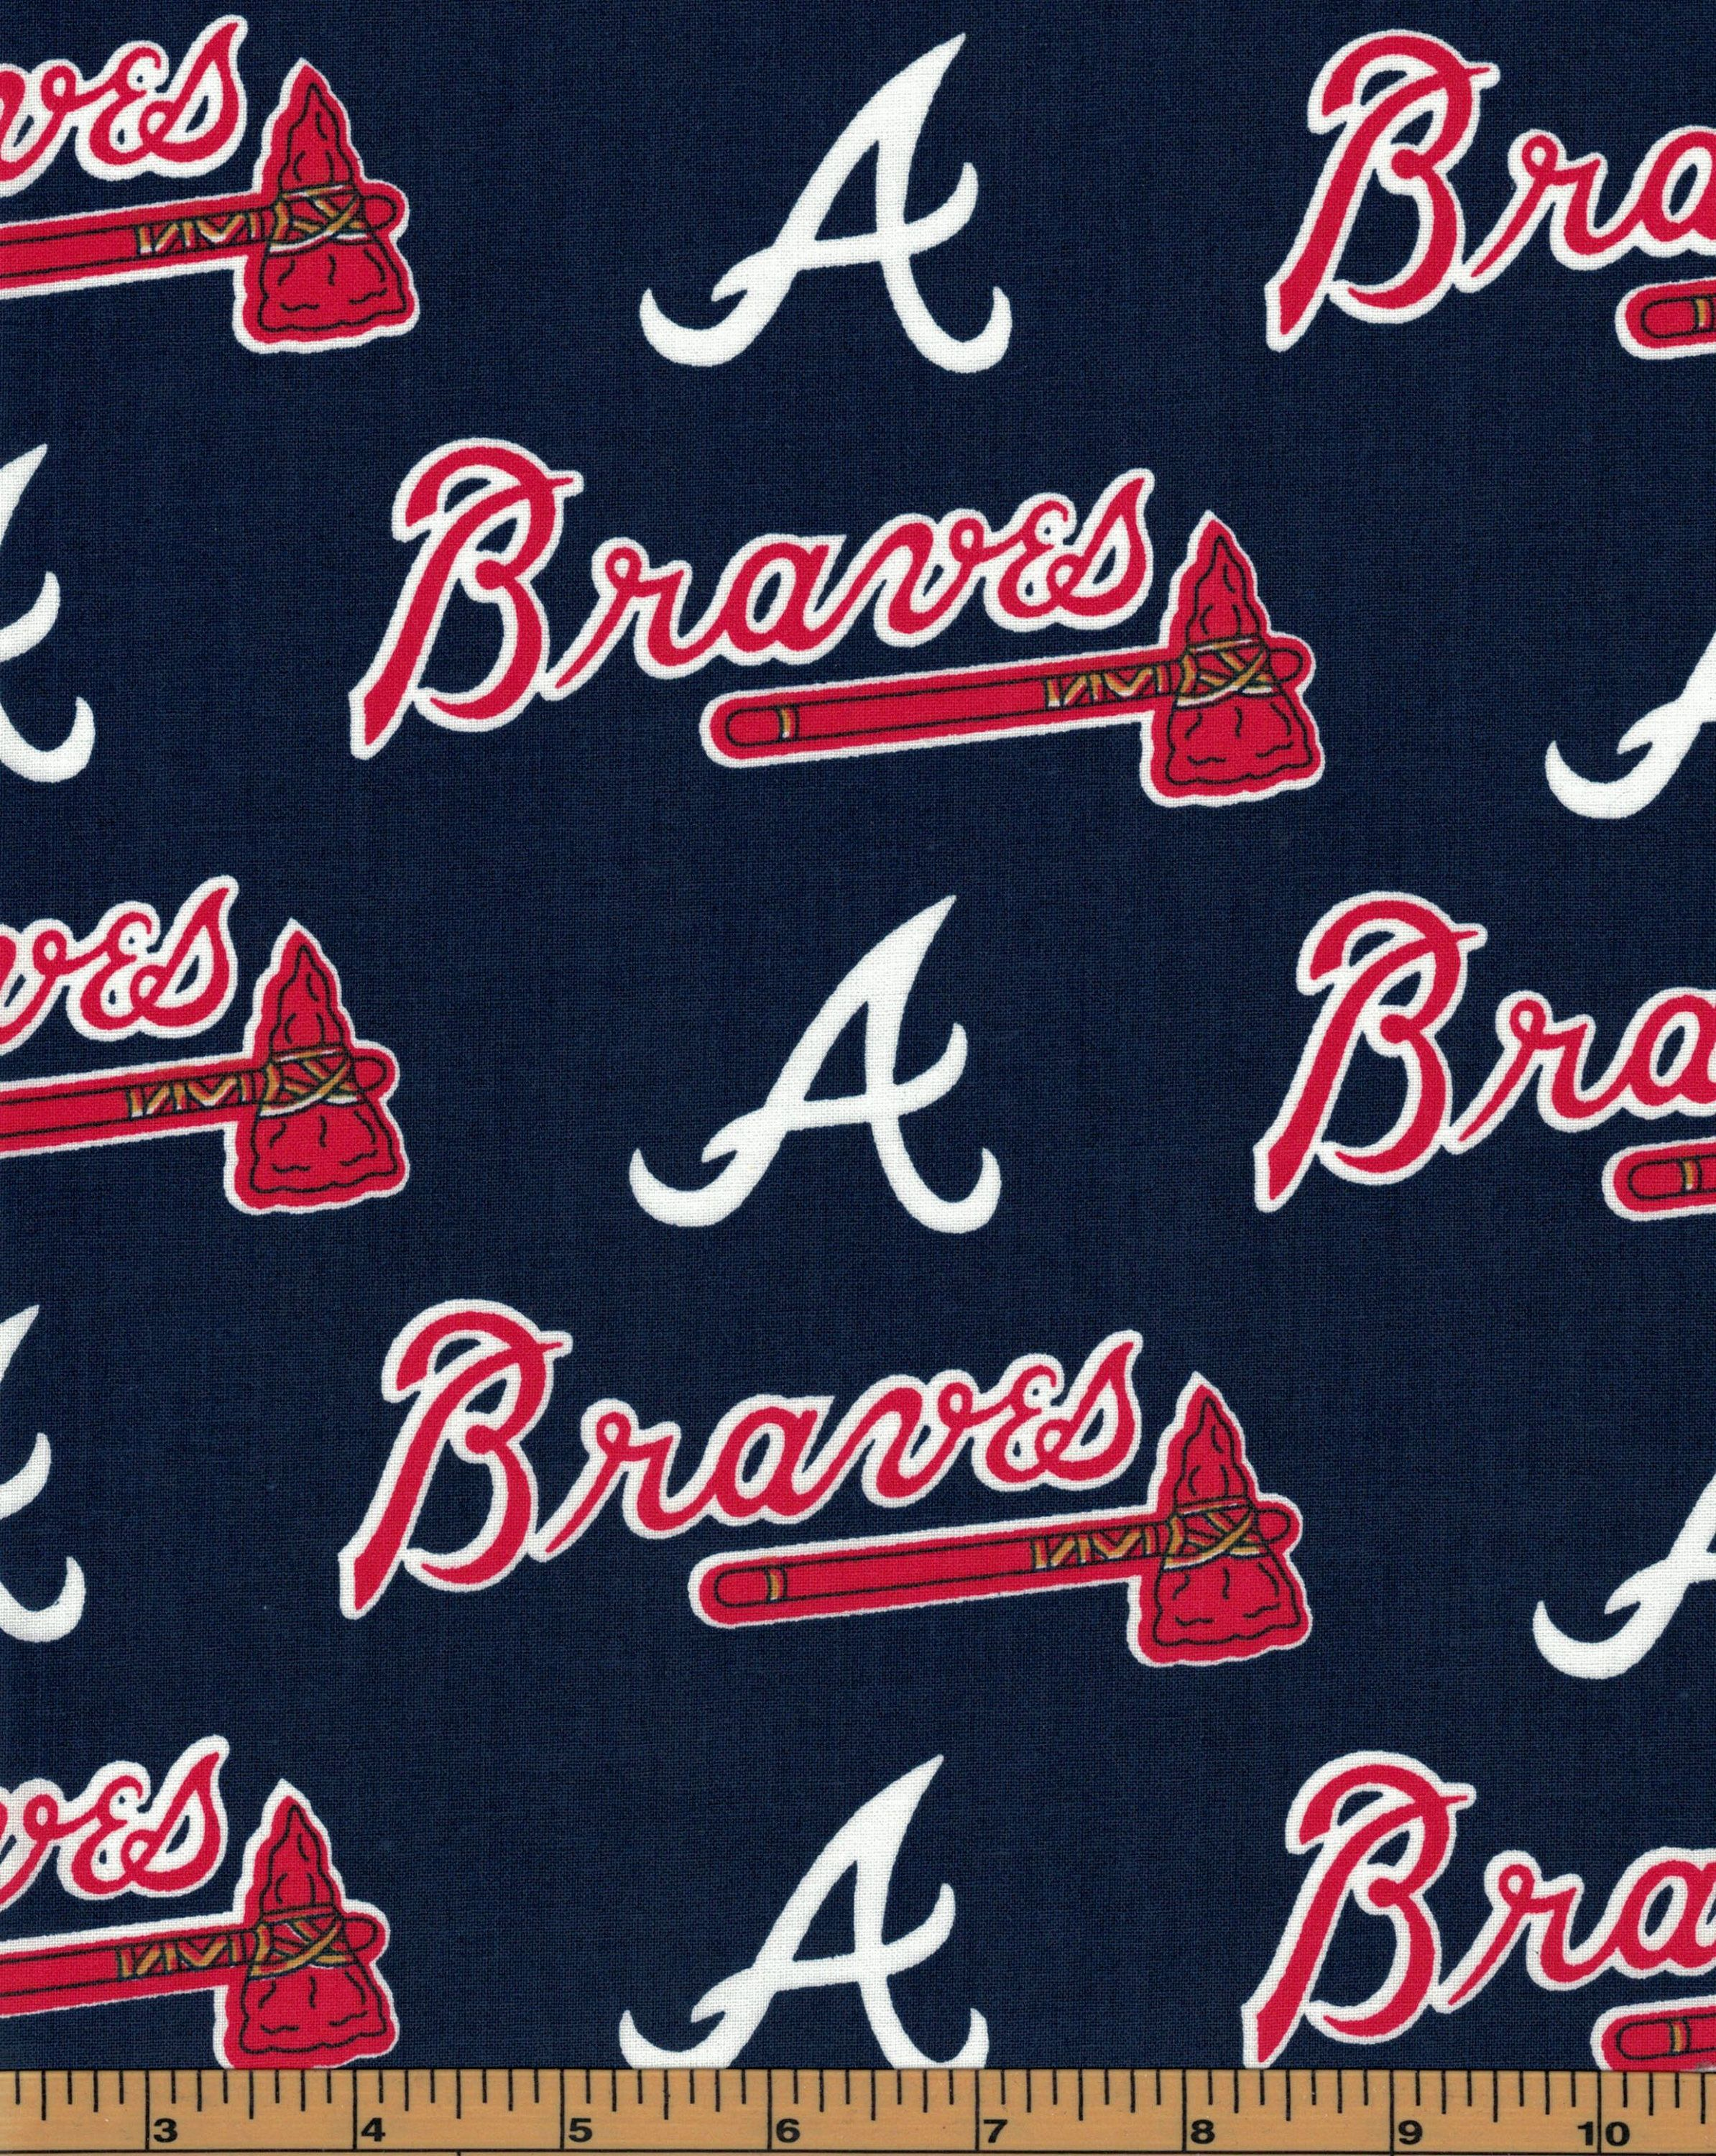 Atlanta Braves Baseball Fabric Mlb 100 Cotton High Quality Fabric By Fabric Traditions By Quiltsont Baseball Fabric Atlanta Braves Baseball Atlanta Braves